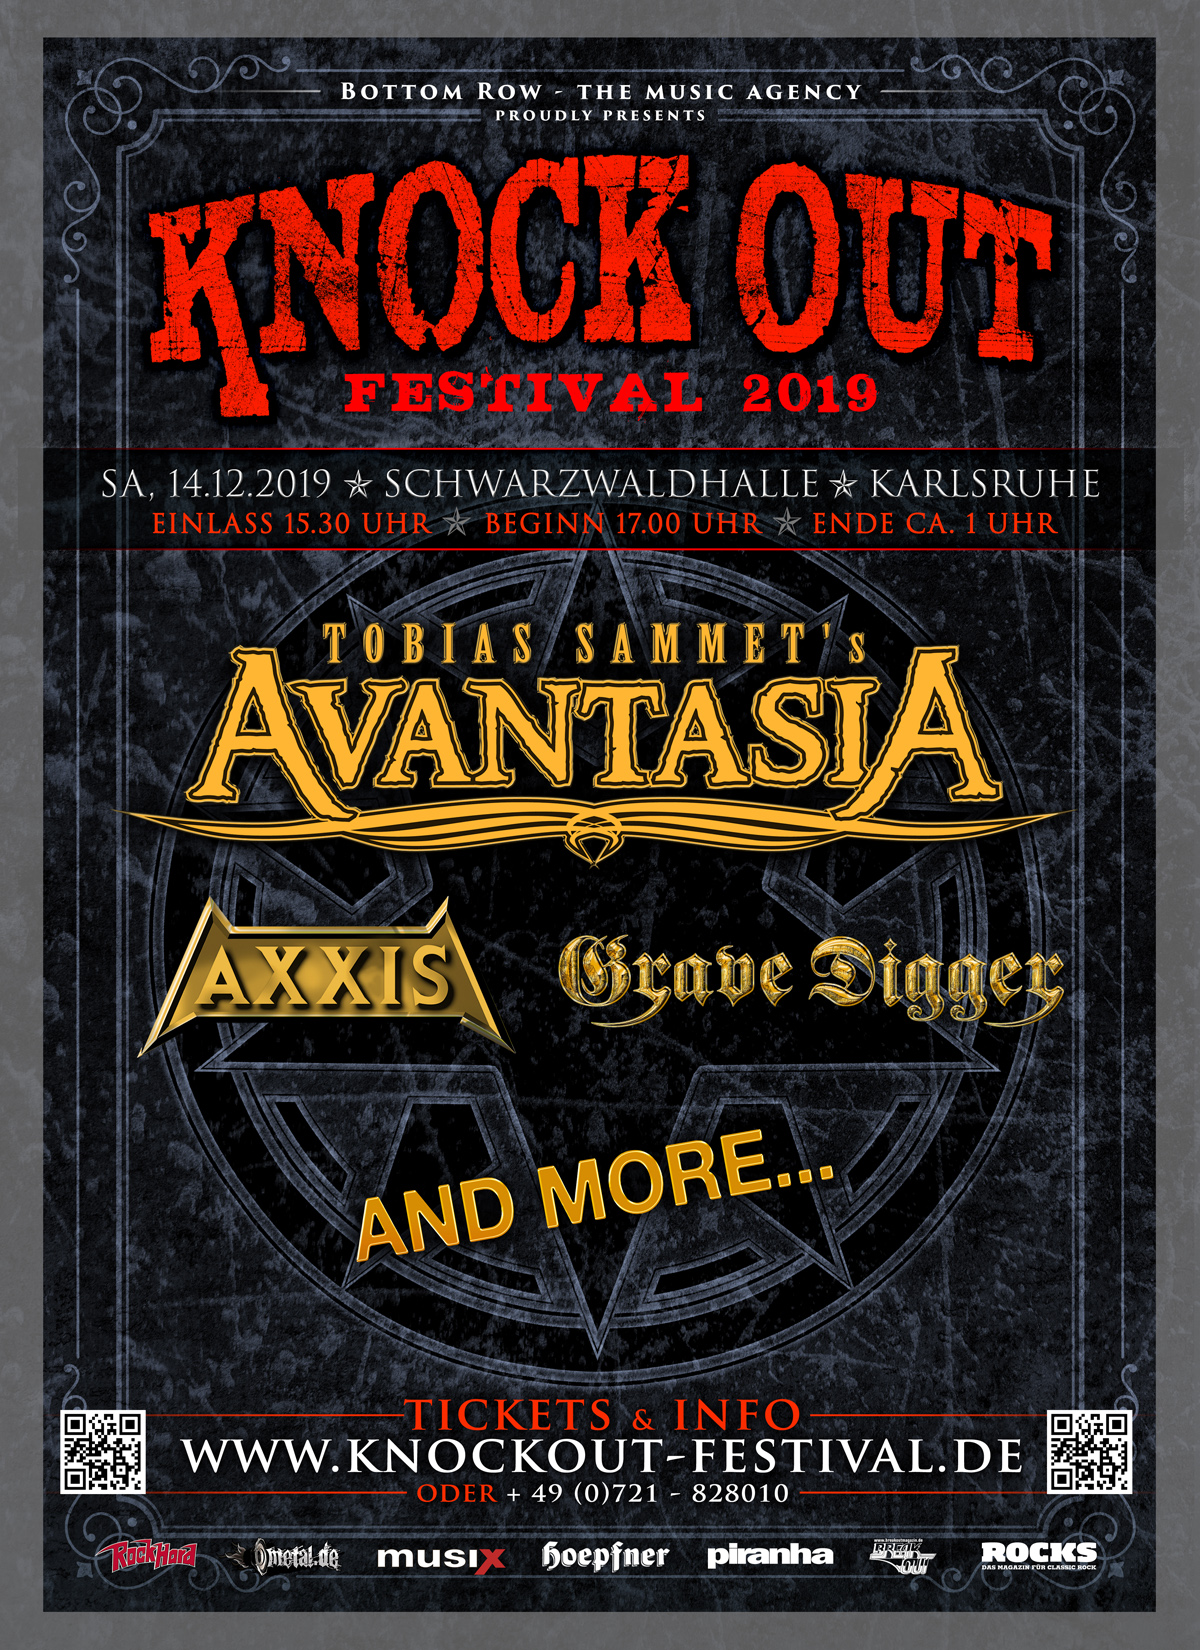 Knock Out Festival 2019